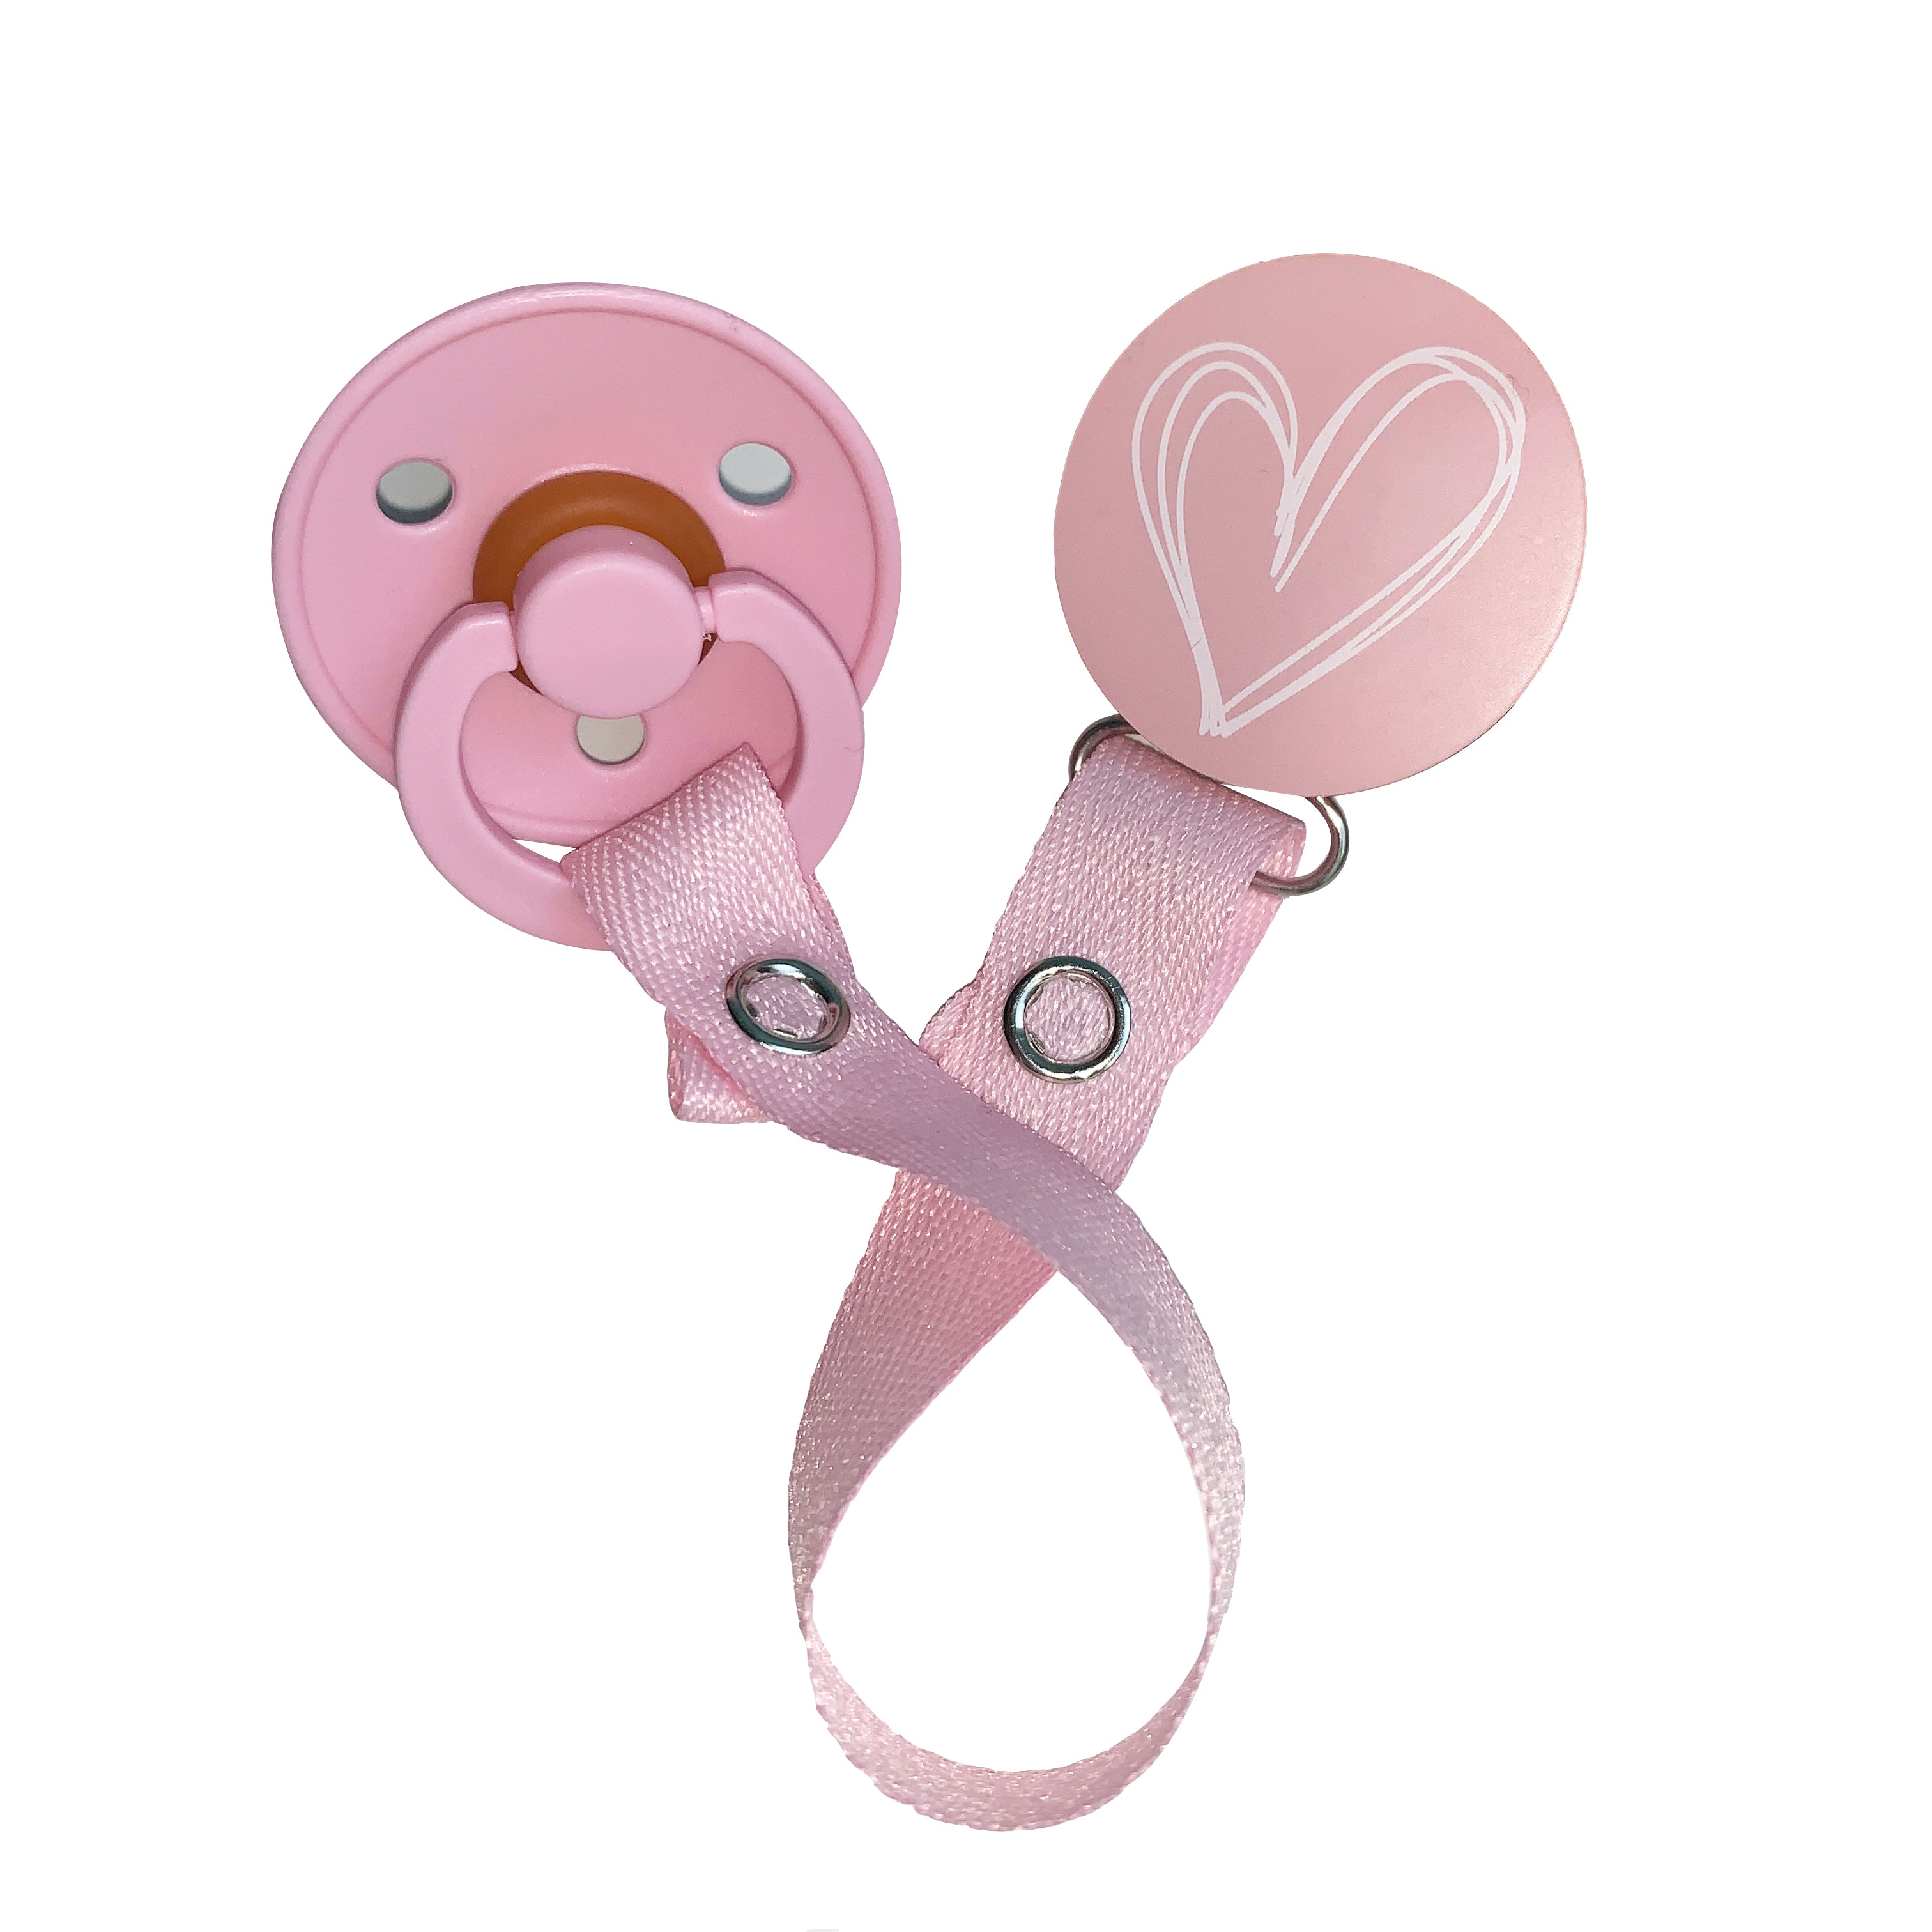 Classy Paci blush pink drawn white heart clip with Bibs pacifier GIFT SET